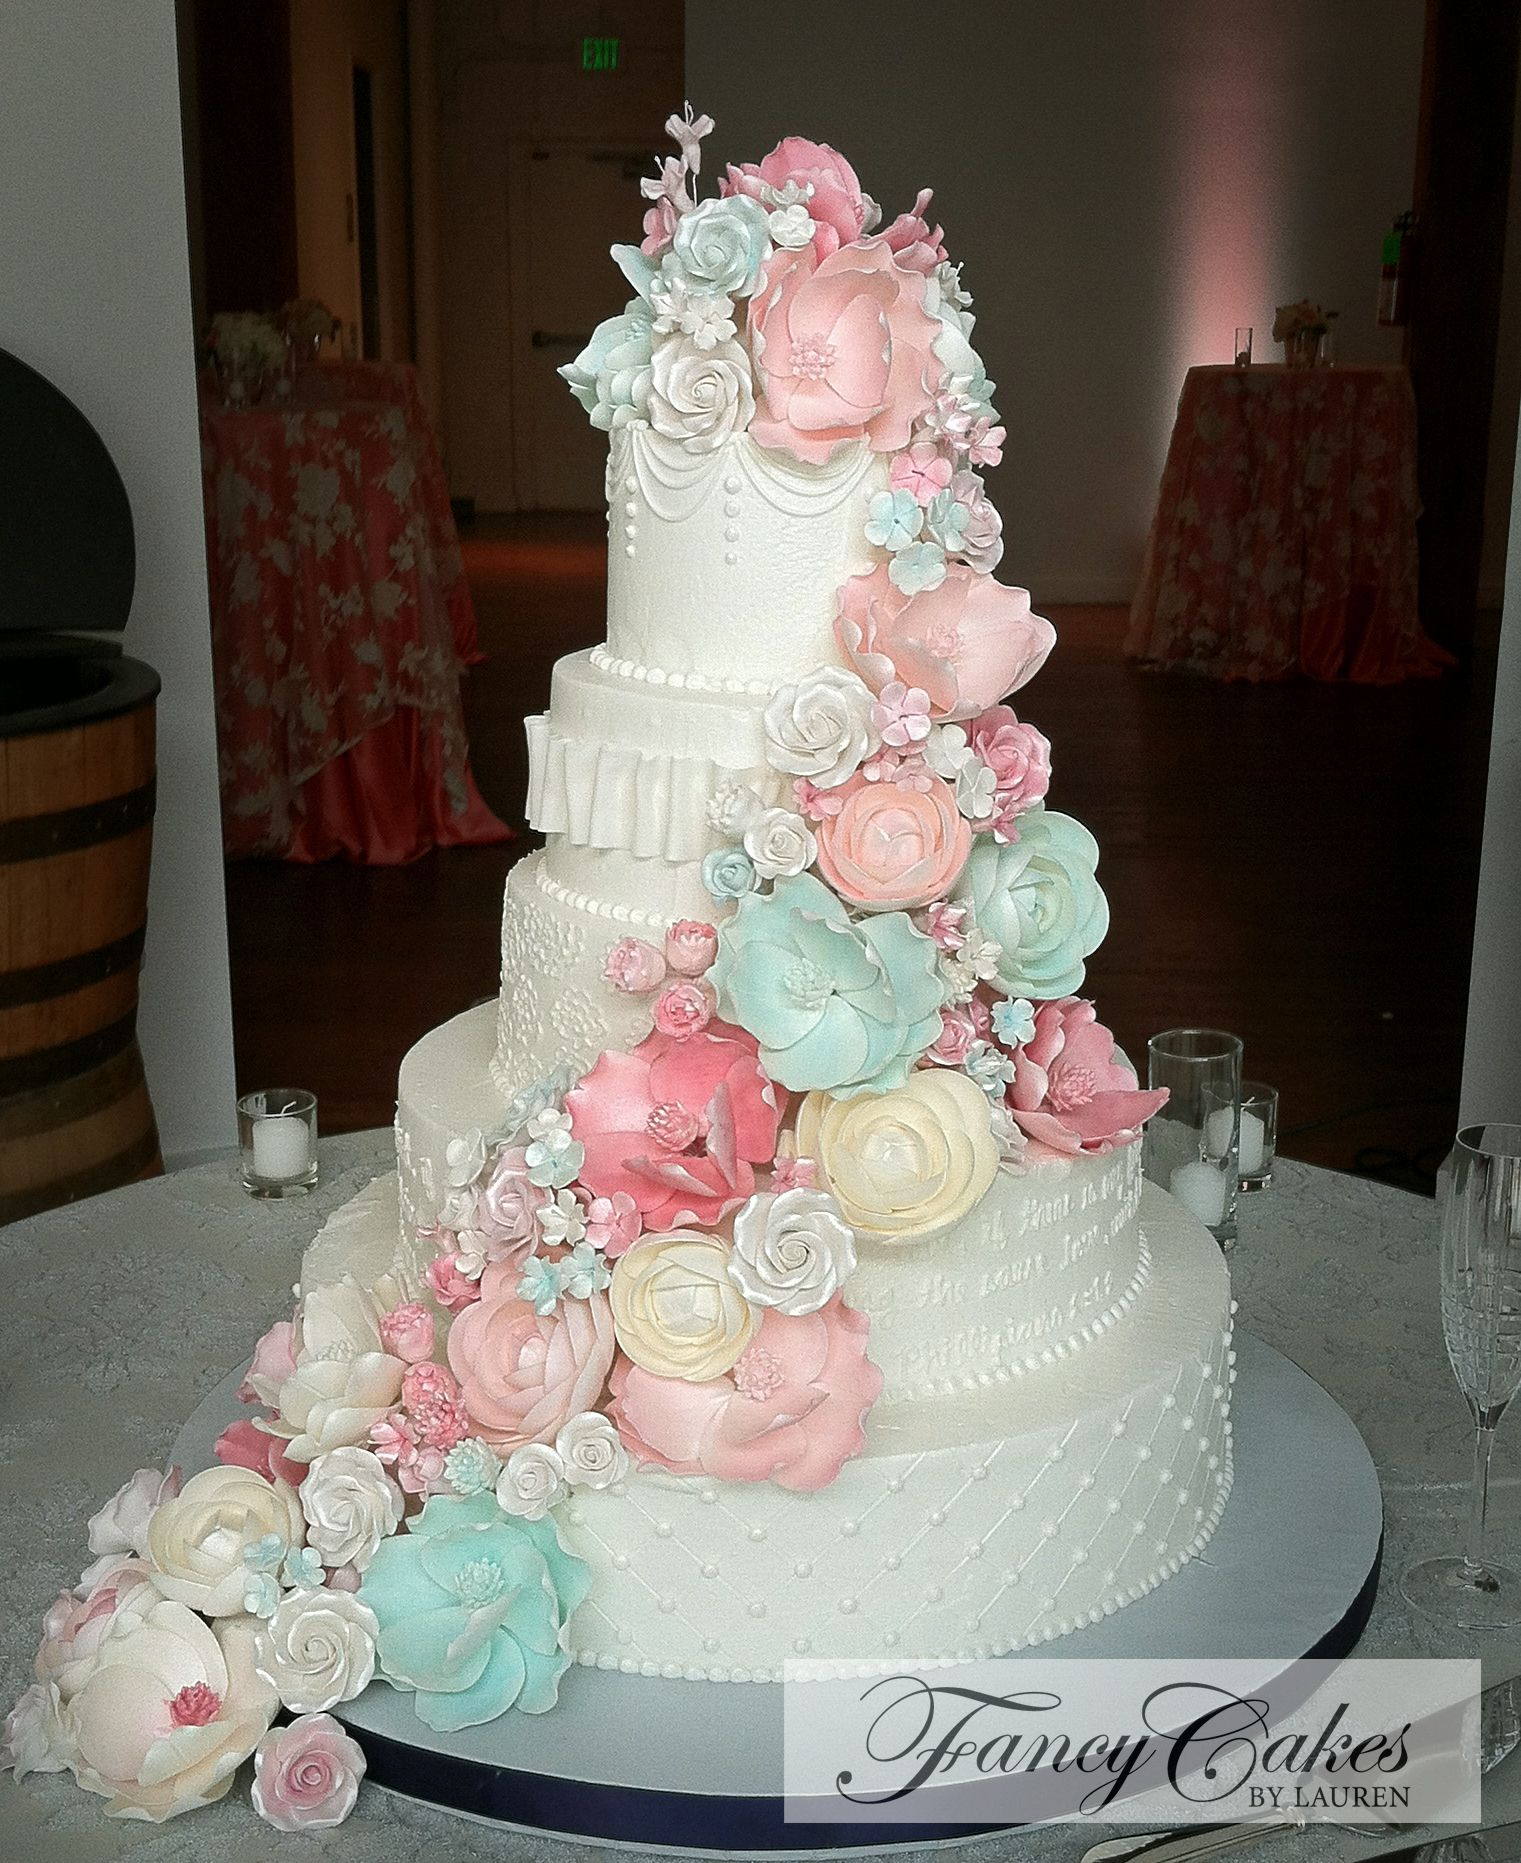 Best 10 Pastel Wedding Cakes Ideas On Pinterest Tiered Wedding Cakes Past